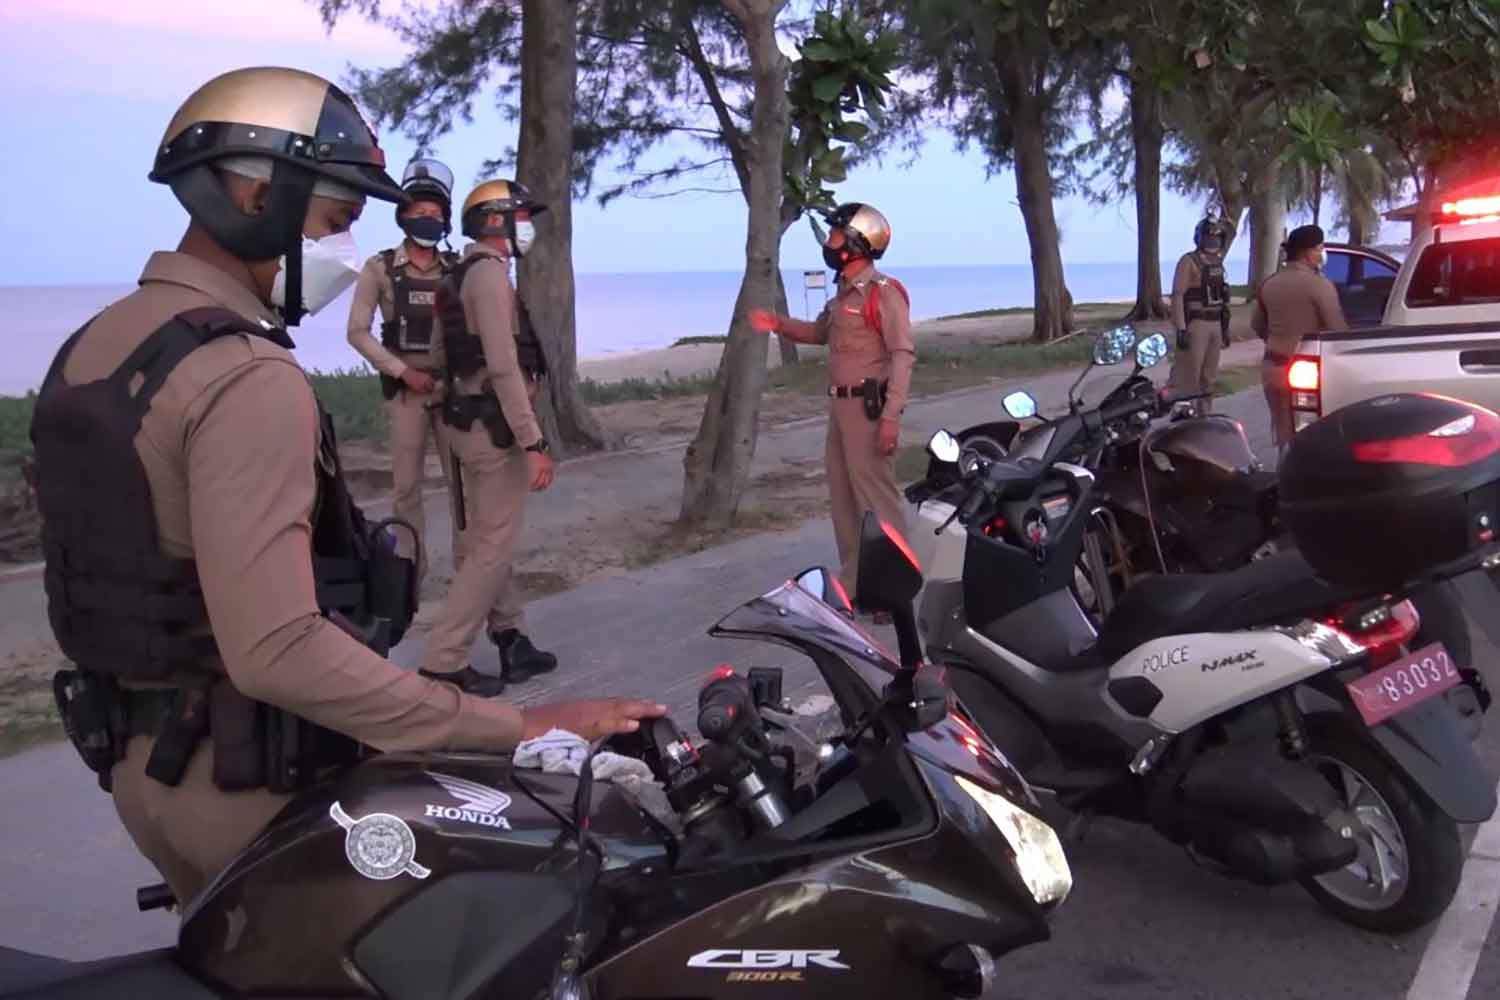 Police impose closure at Chalatat beach in Muang district of Songkhla on Tuesday. (Photo: Assawin Pakkawan)